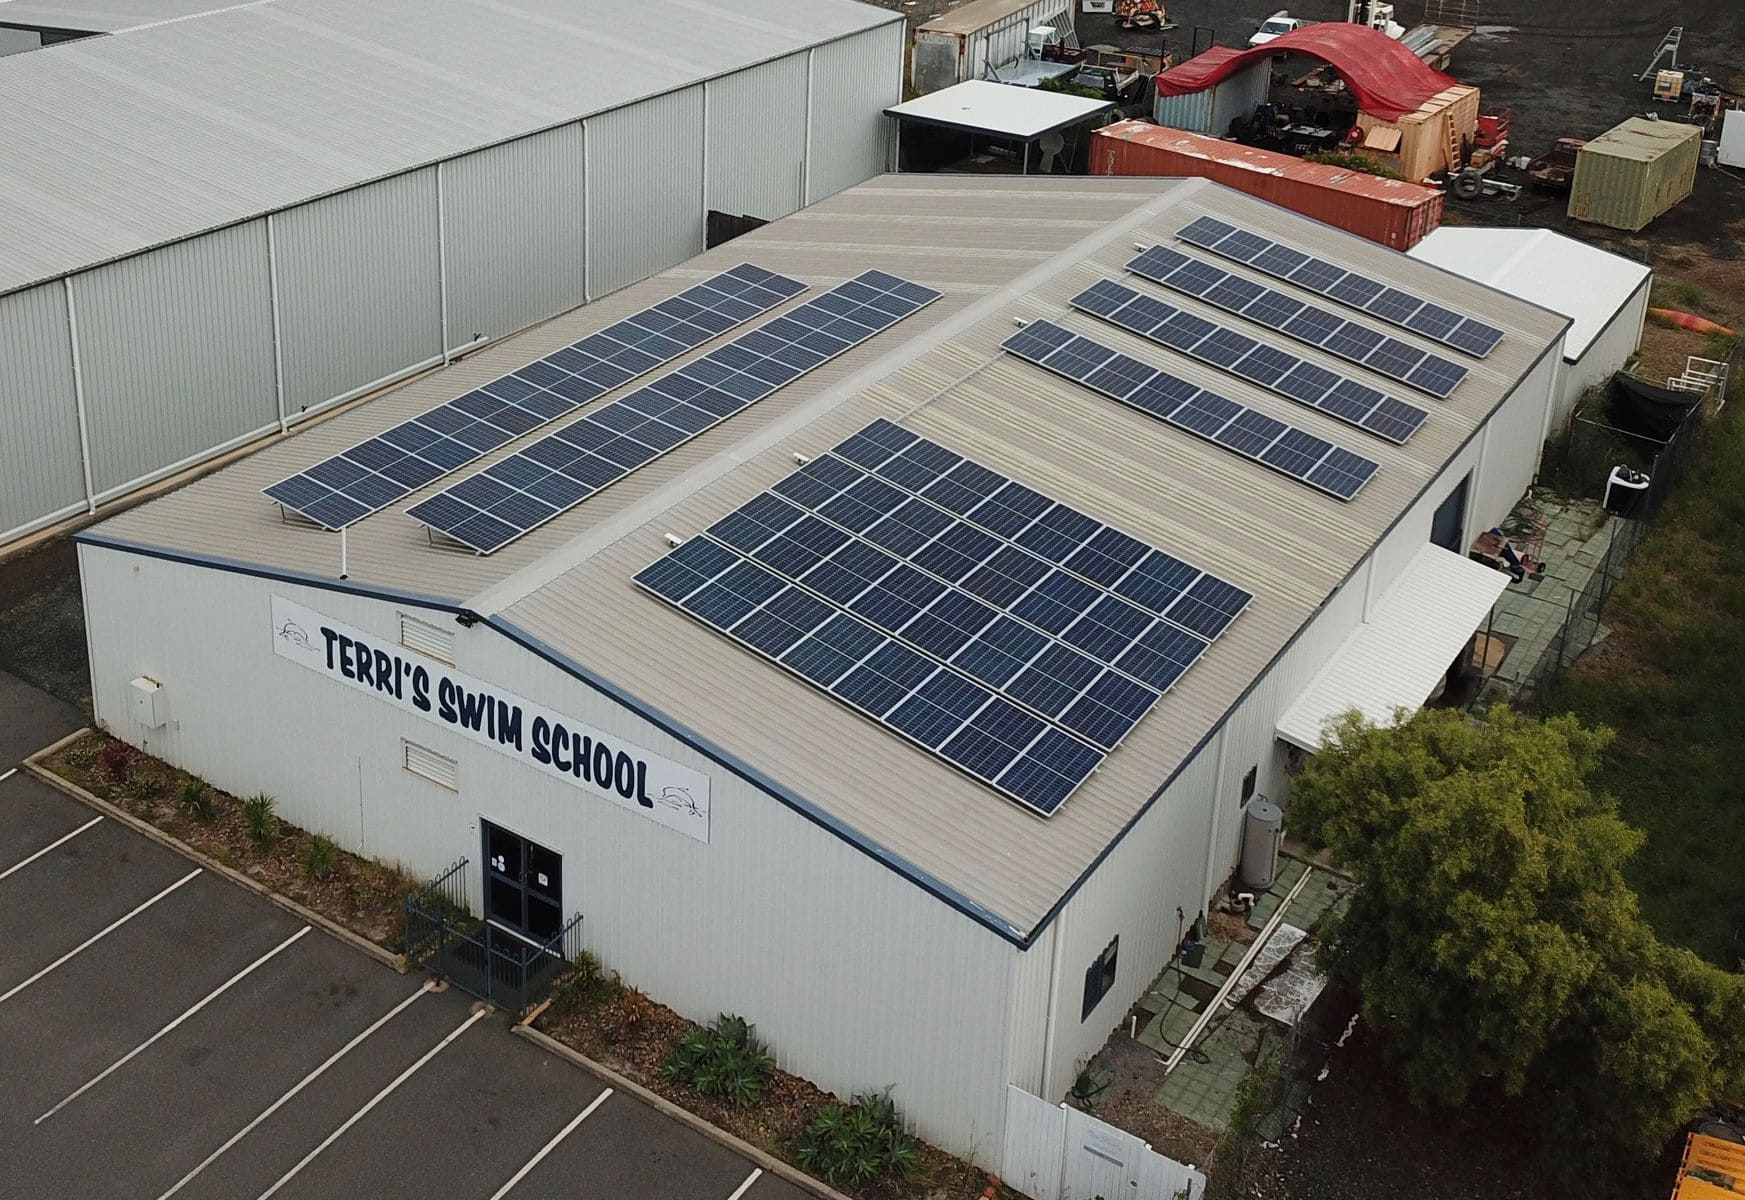 solar panels on the roof of the Terri swim school facility